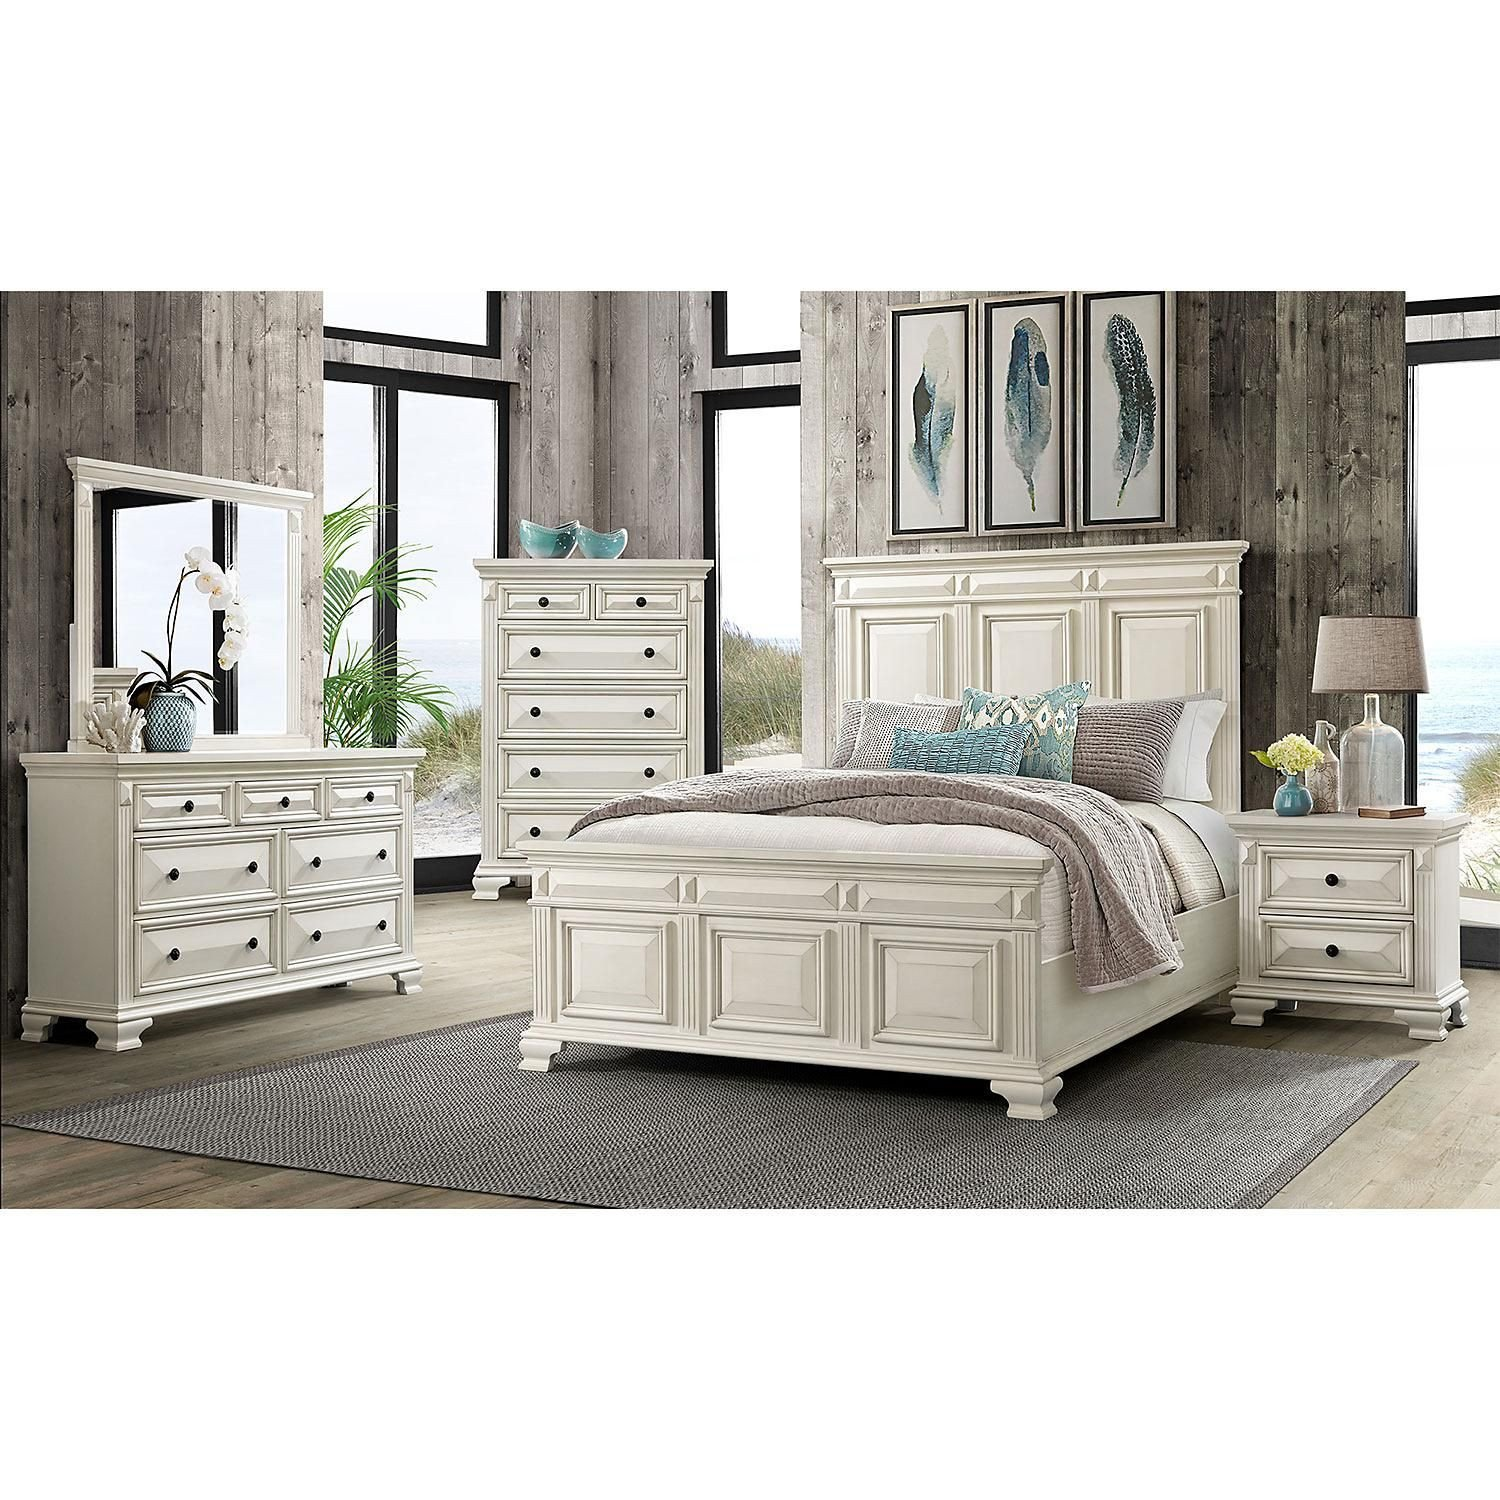 Cheap White Bedroom Set Unique $1599 00 society Den Trent Panel 6 Piece King Bedroom Set